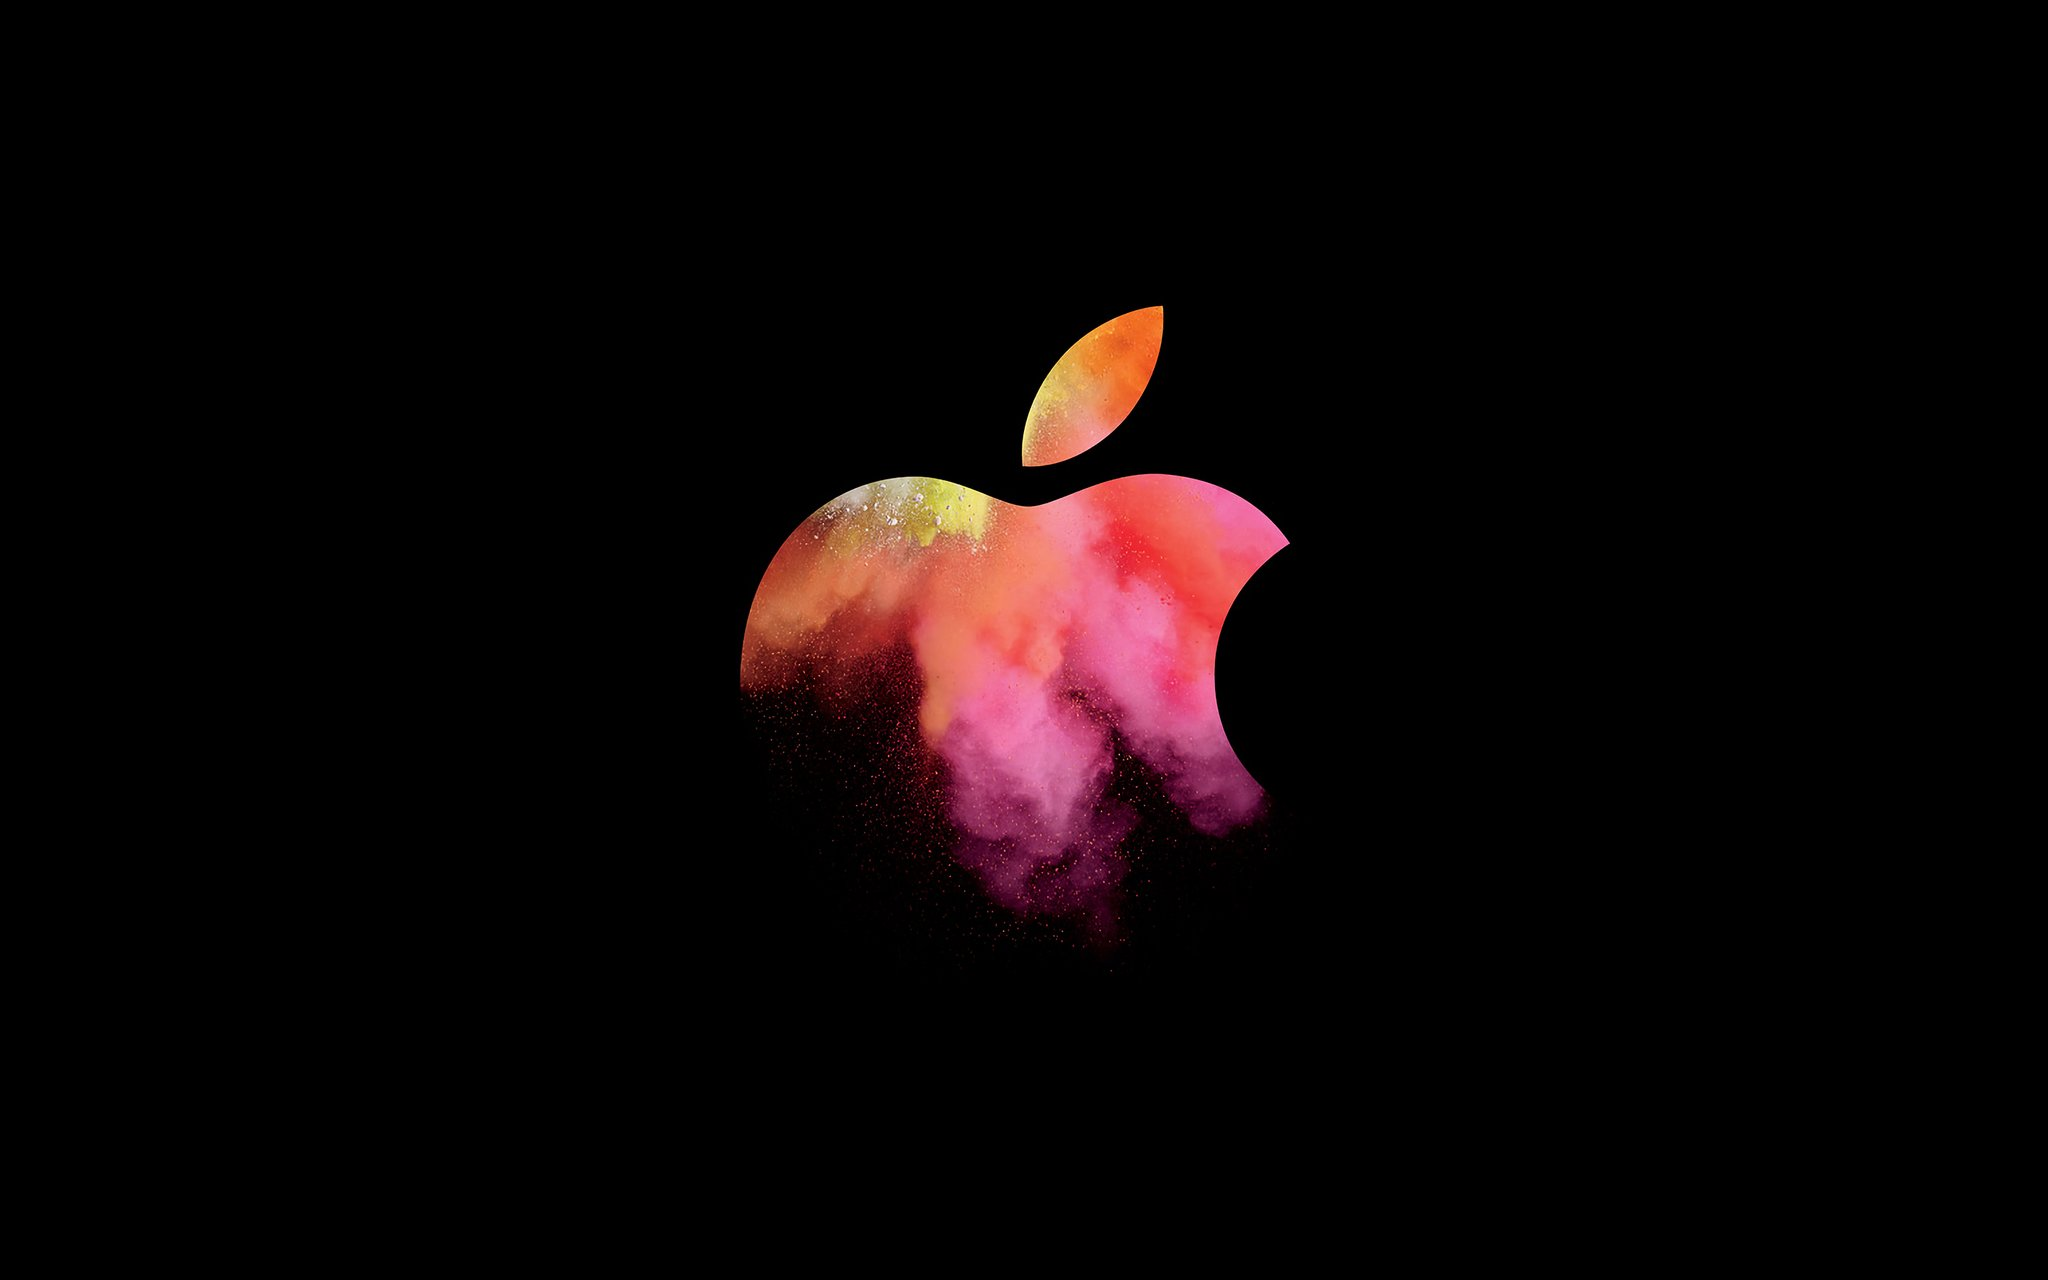 aaronxic-apple-october-27-event-desktop